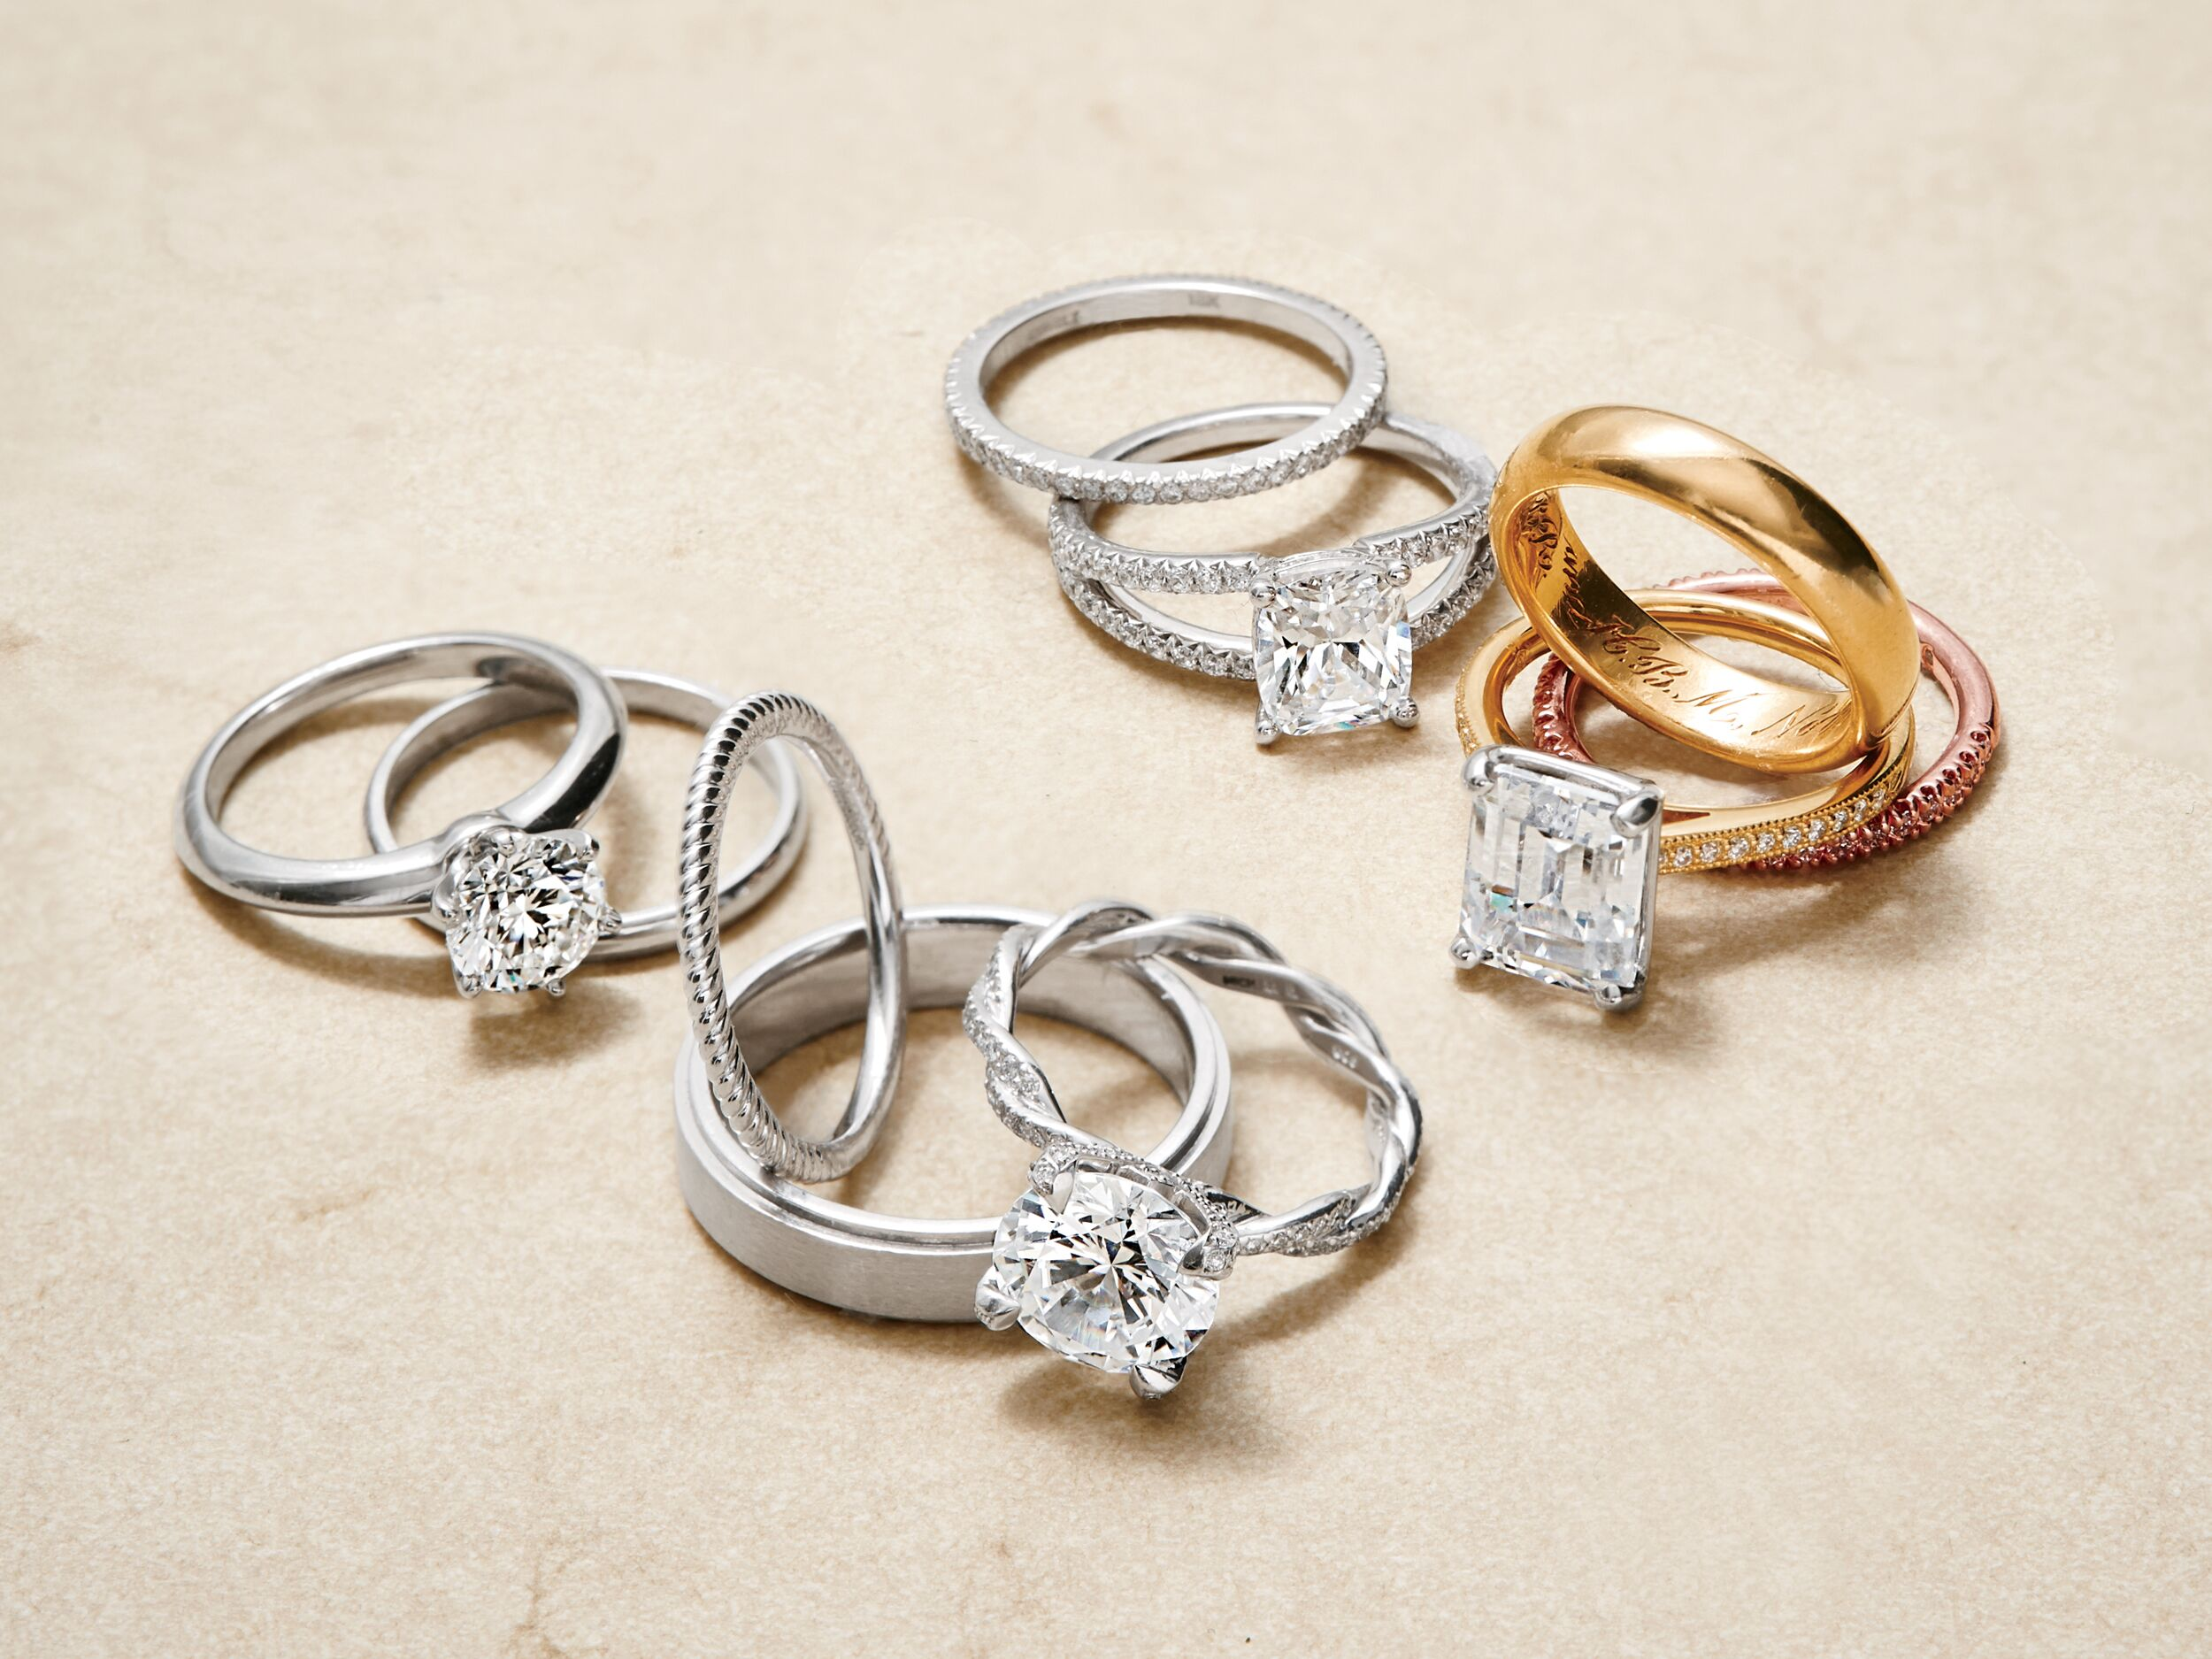 11 ways to pick the perfect wedding ring - Pictures Of Wedding Rings